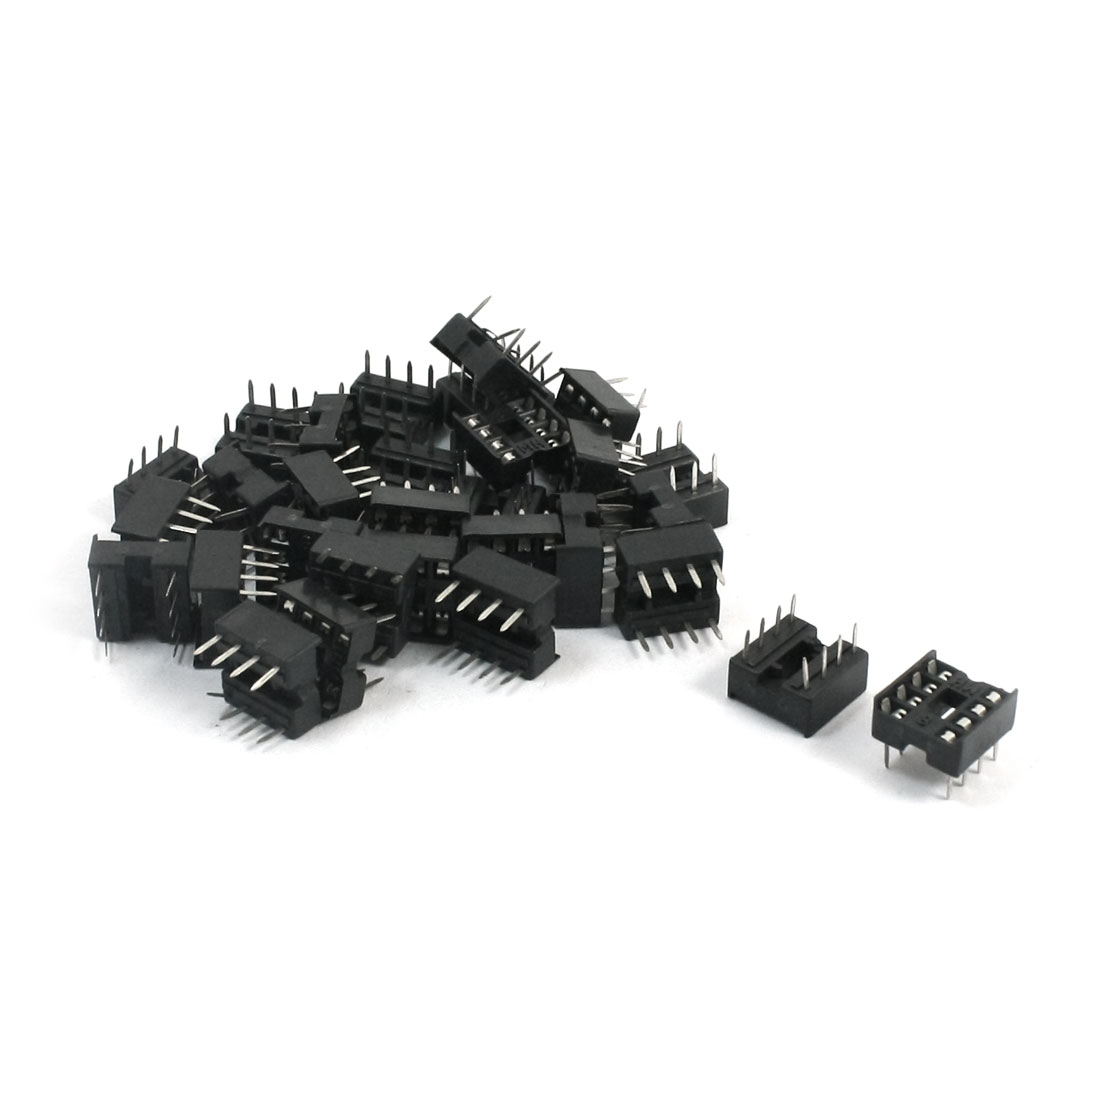 30 Pieces 2.54mm Pitch 8 Pins Double Row DIP IC Socket Adapter Solder